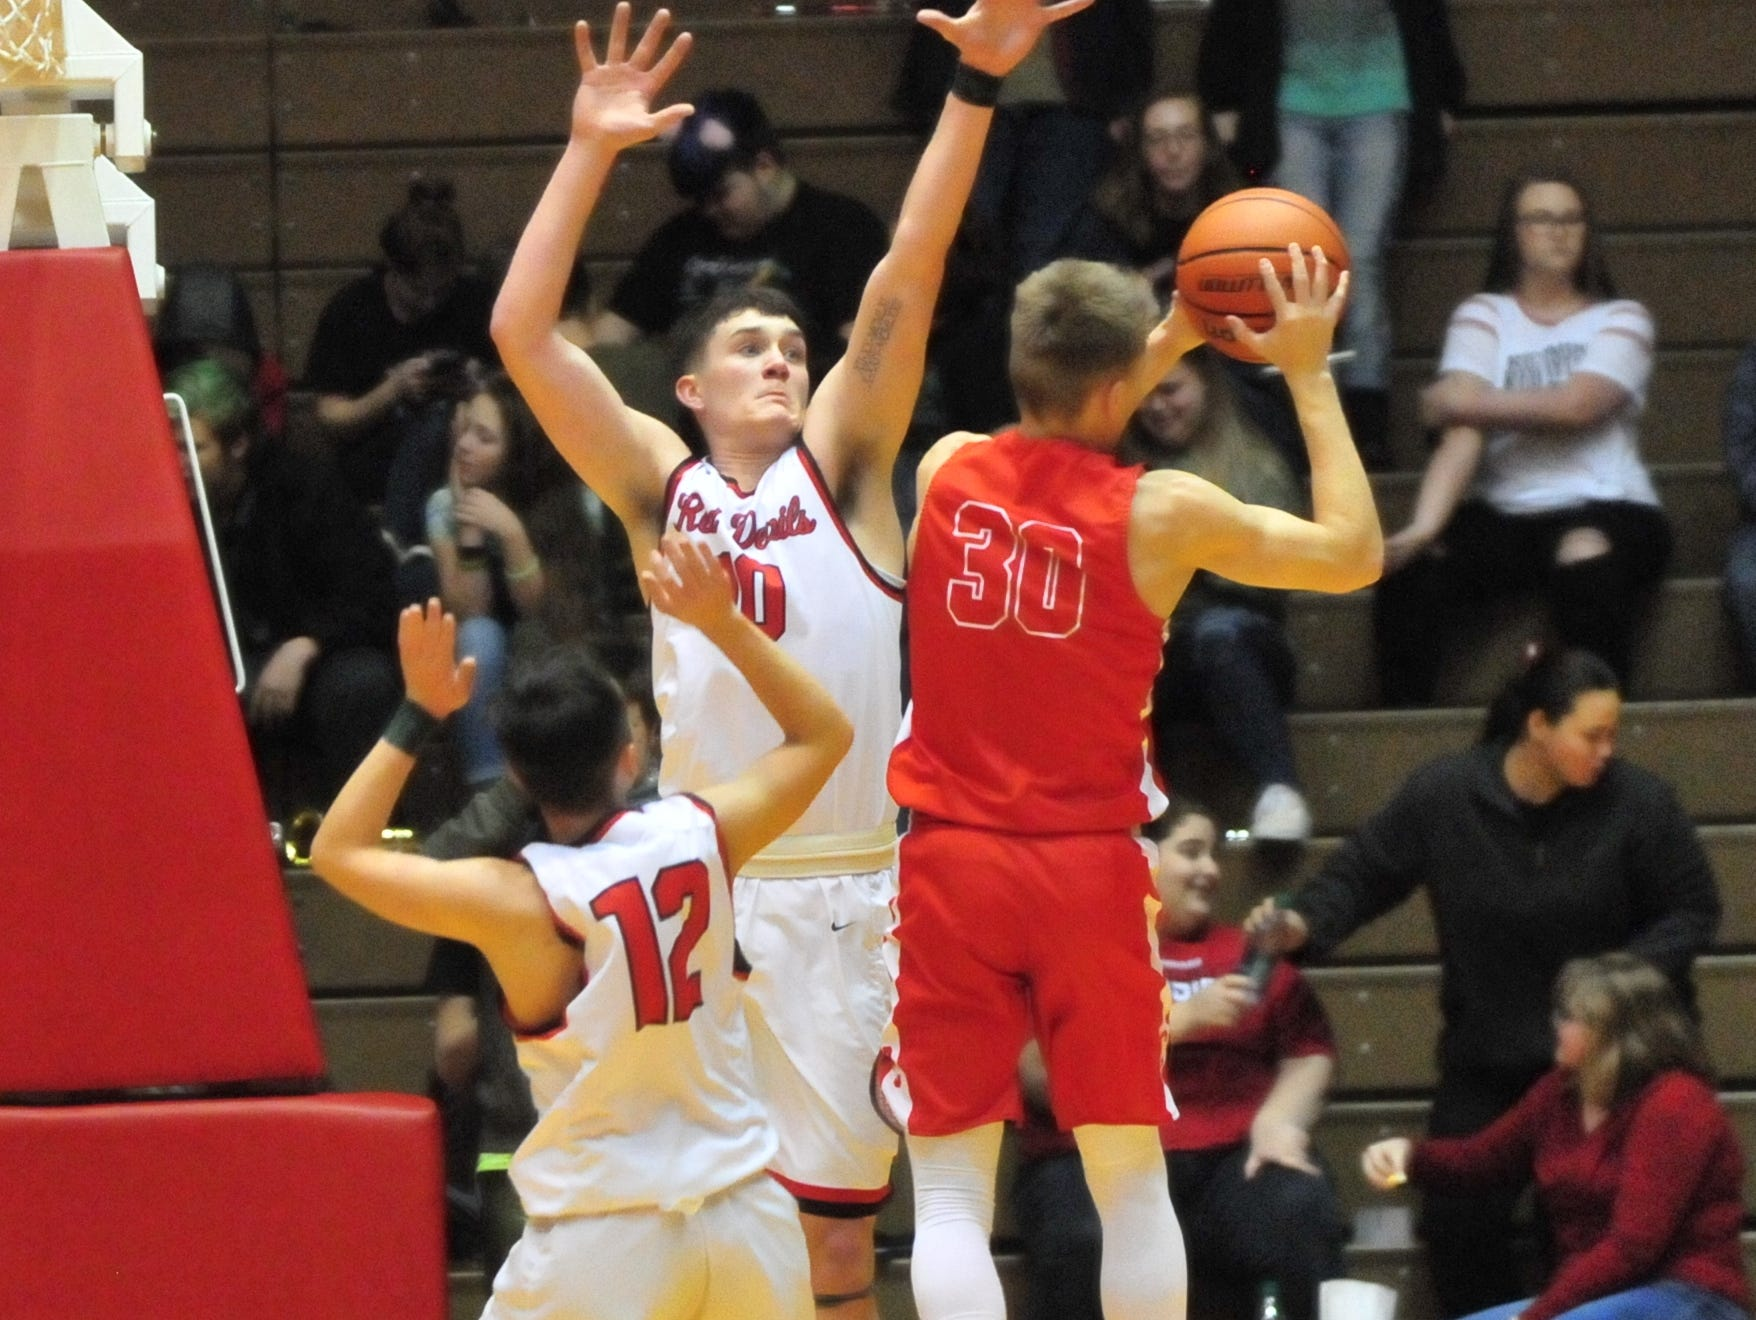 Richmond's Lucas Kroft (10) jumps during Saturday's 42-39 boys basketball loss to Connersville Dec. 15, 2018 at Tiernan Center. Stolle will be eligible to return on Wednesday.